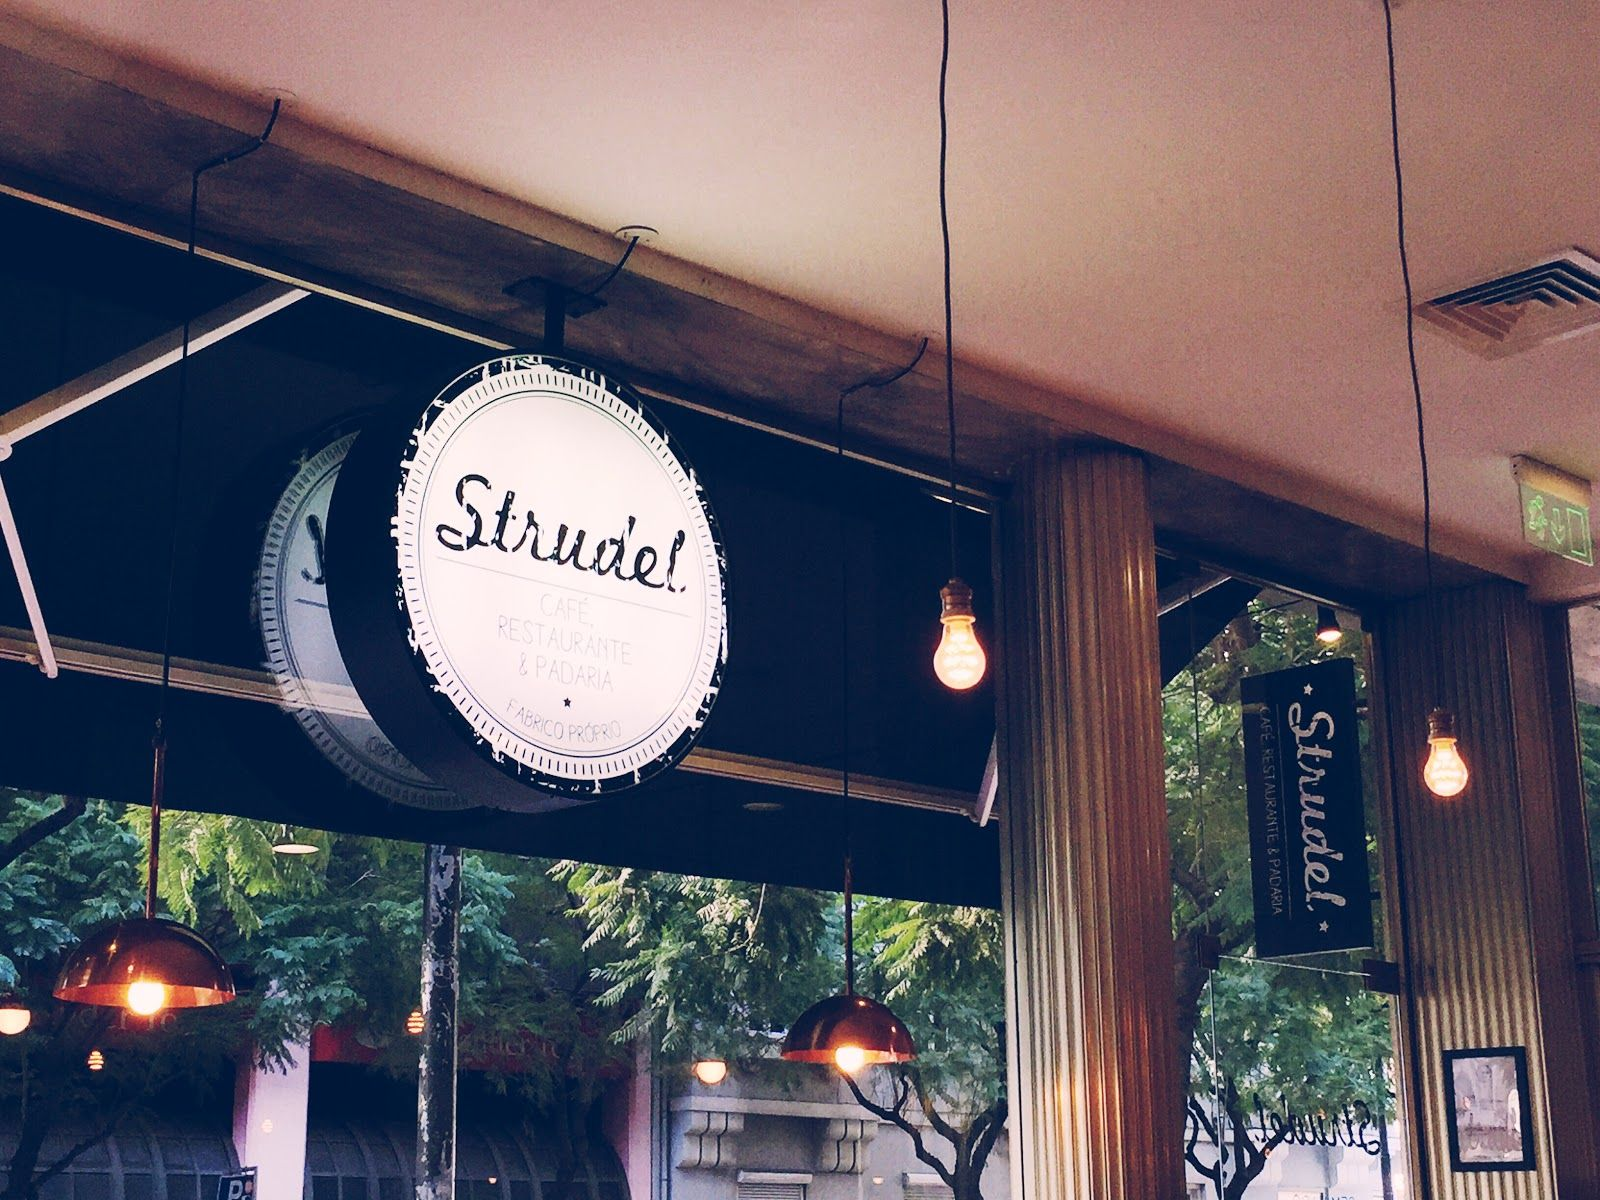 Confessions of a Shopaholic: New in town - Strudel